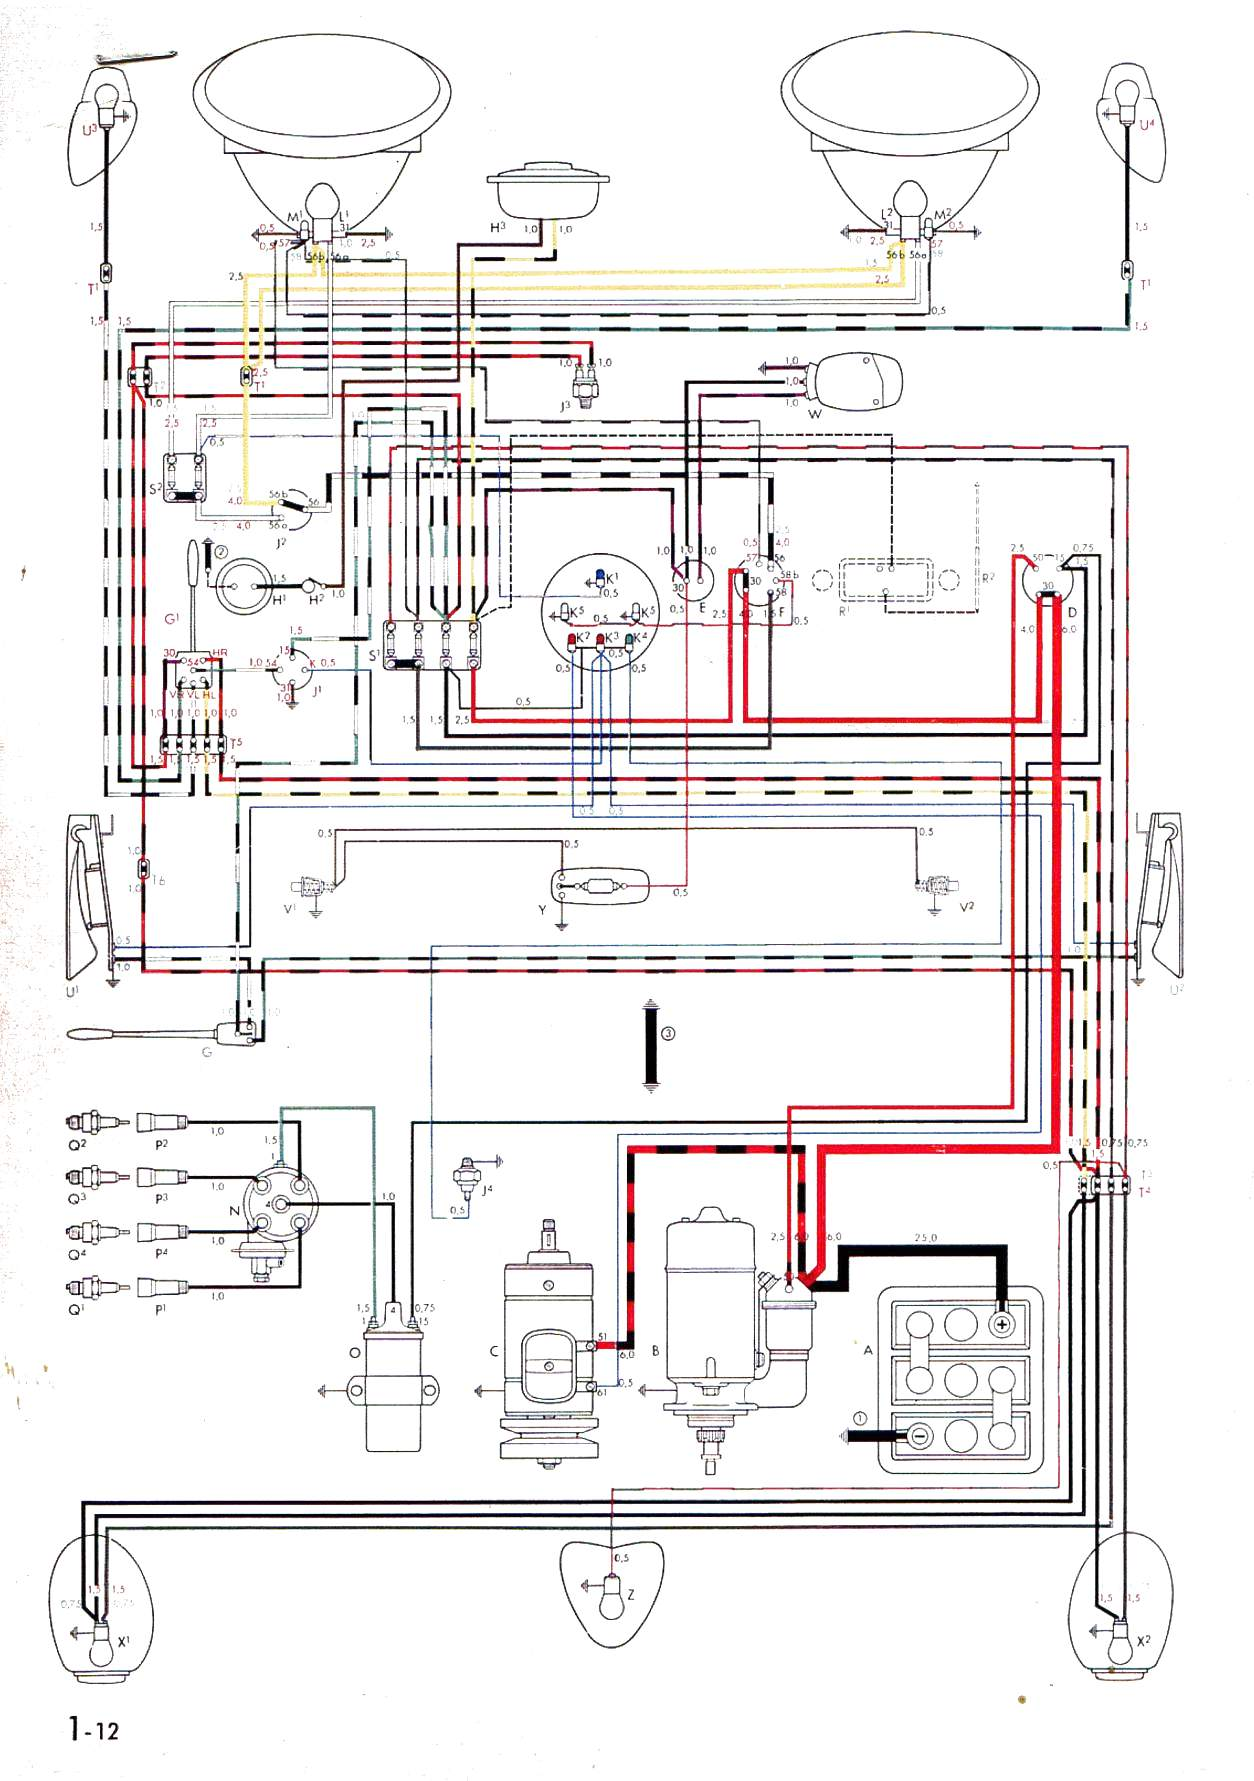 vw sand rail wiring diagram balboa instruments buggy